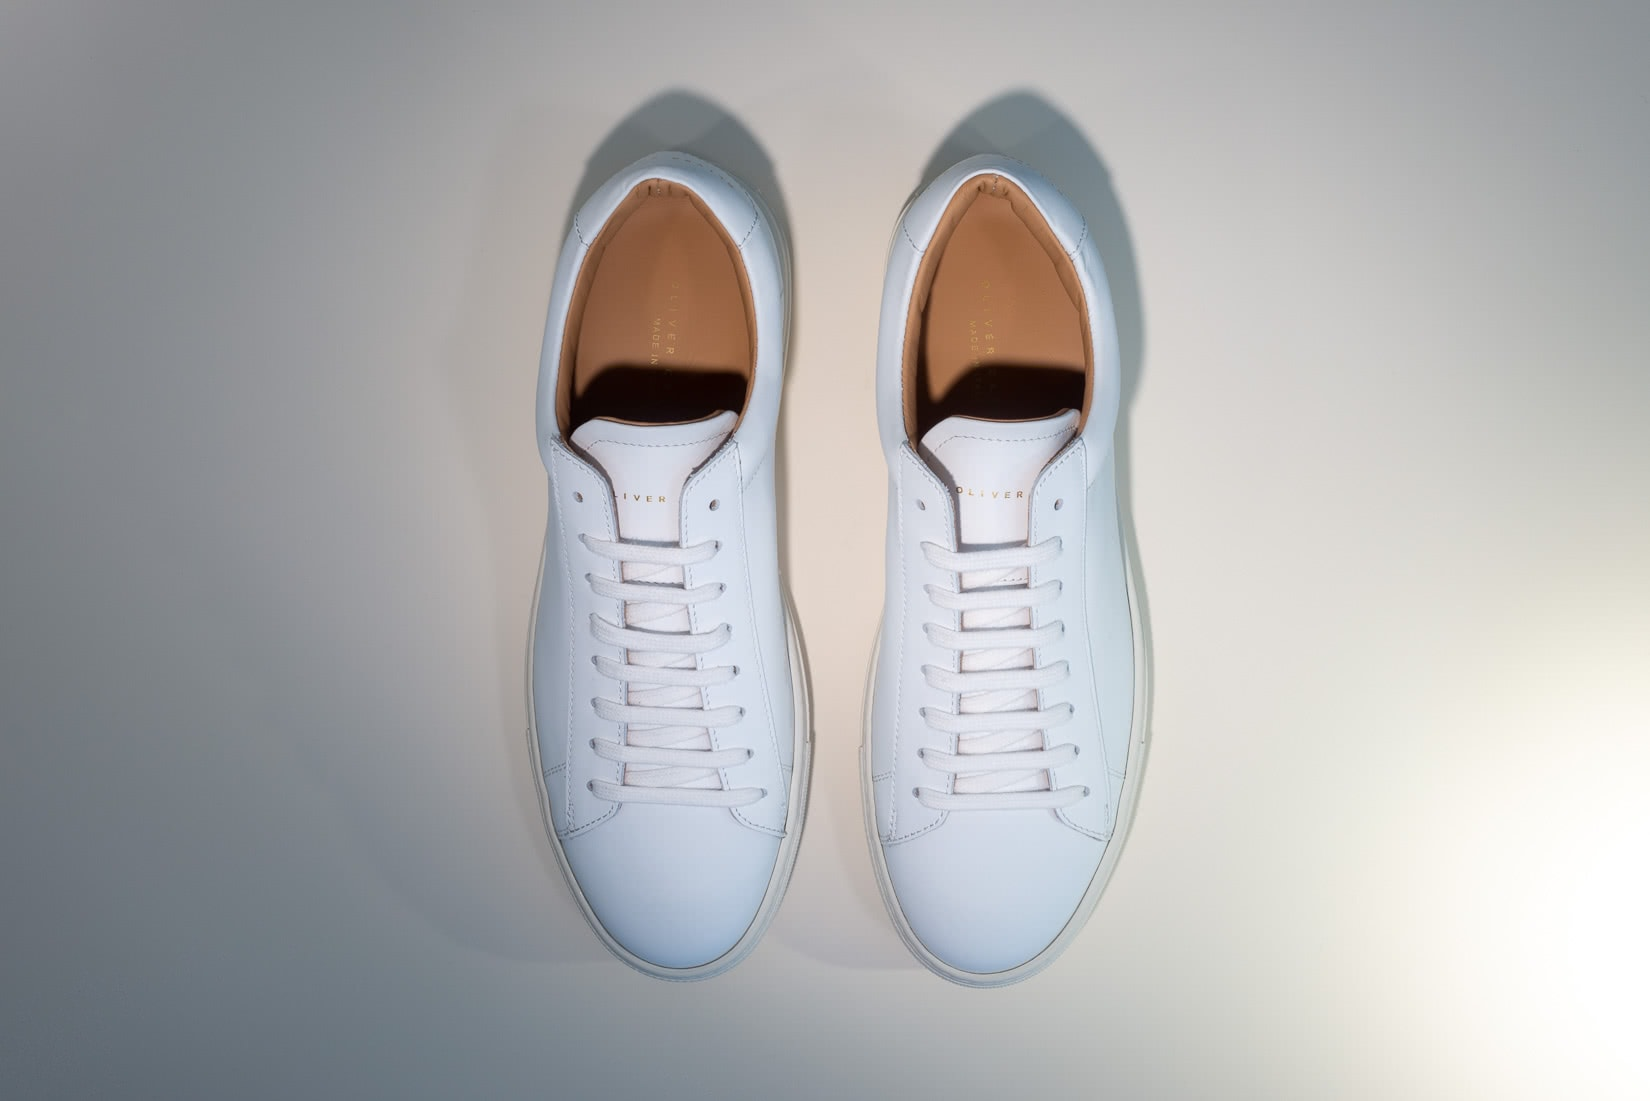 oliver cabell review low 1 sneakers top - Luxe Digital